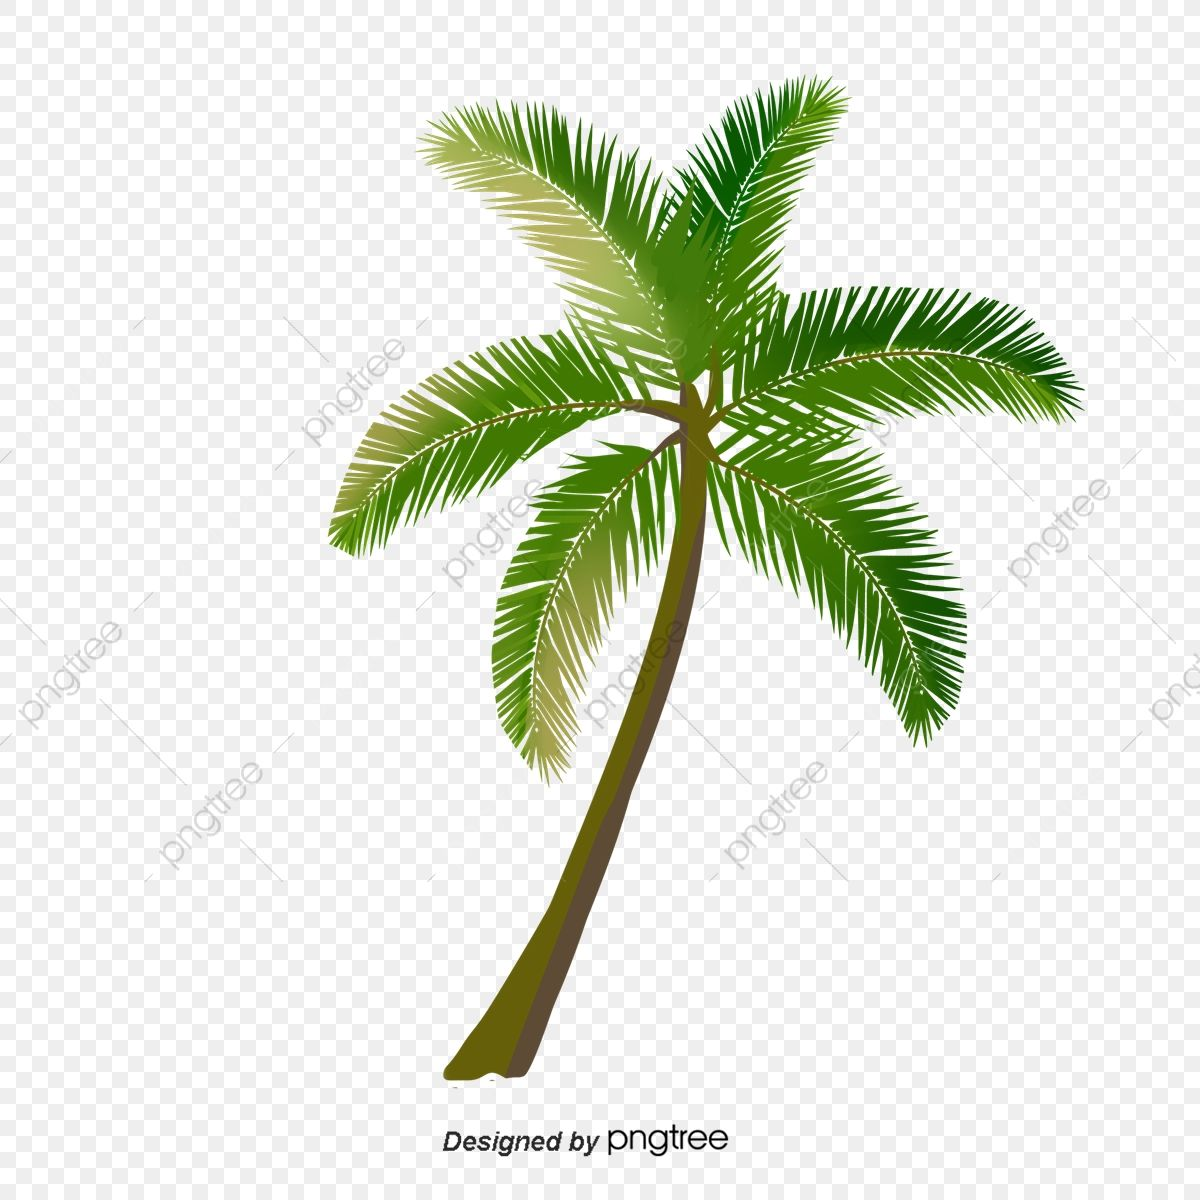 Cartoon Green Palm Tree Nature Clip Art Hand Painted Png Transparent Clipart Image And Psd File For Free Download In 2021 Cartoon Palm Tree Palm Tree Png Palm Trees